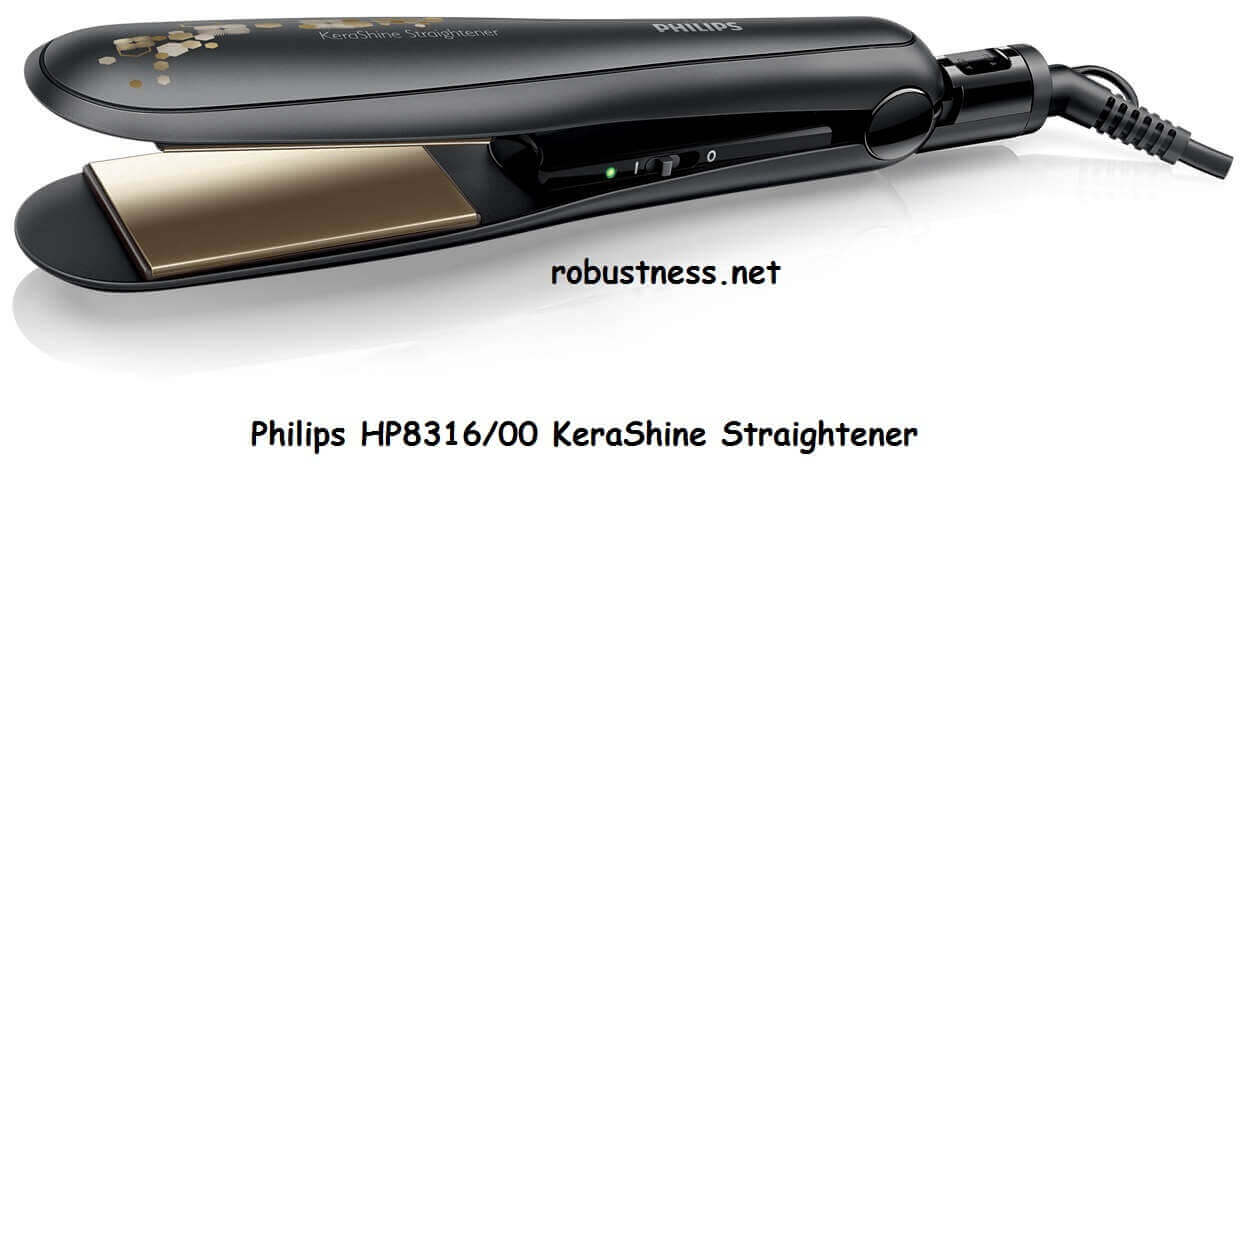 best philips hair straightener in india Philips HP8316